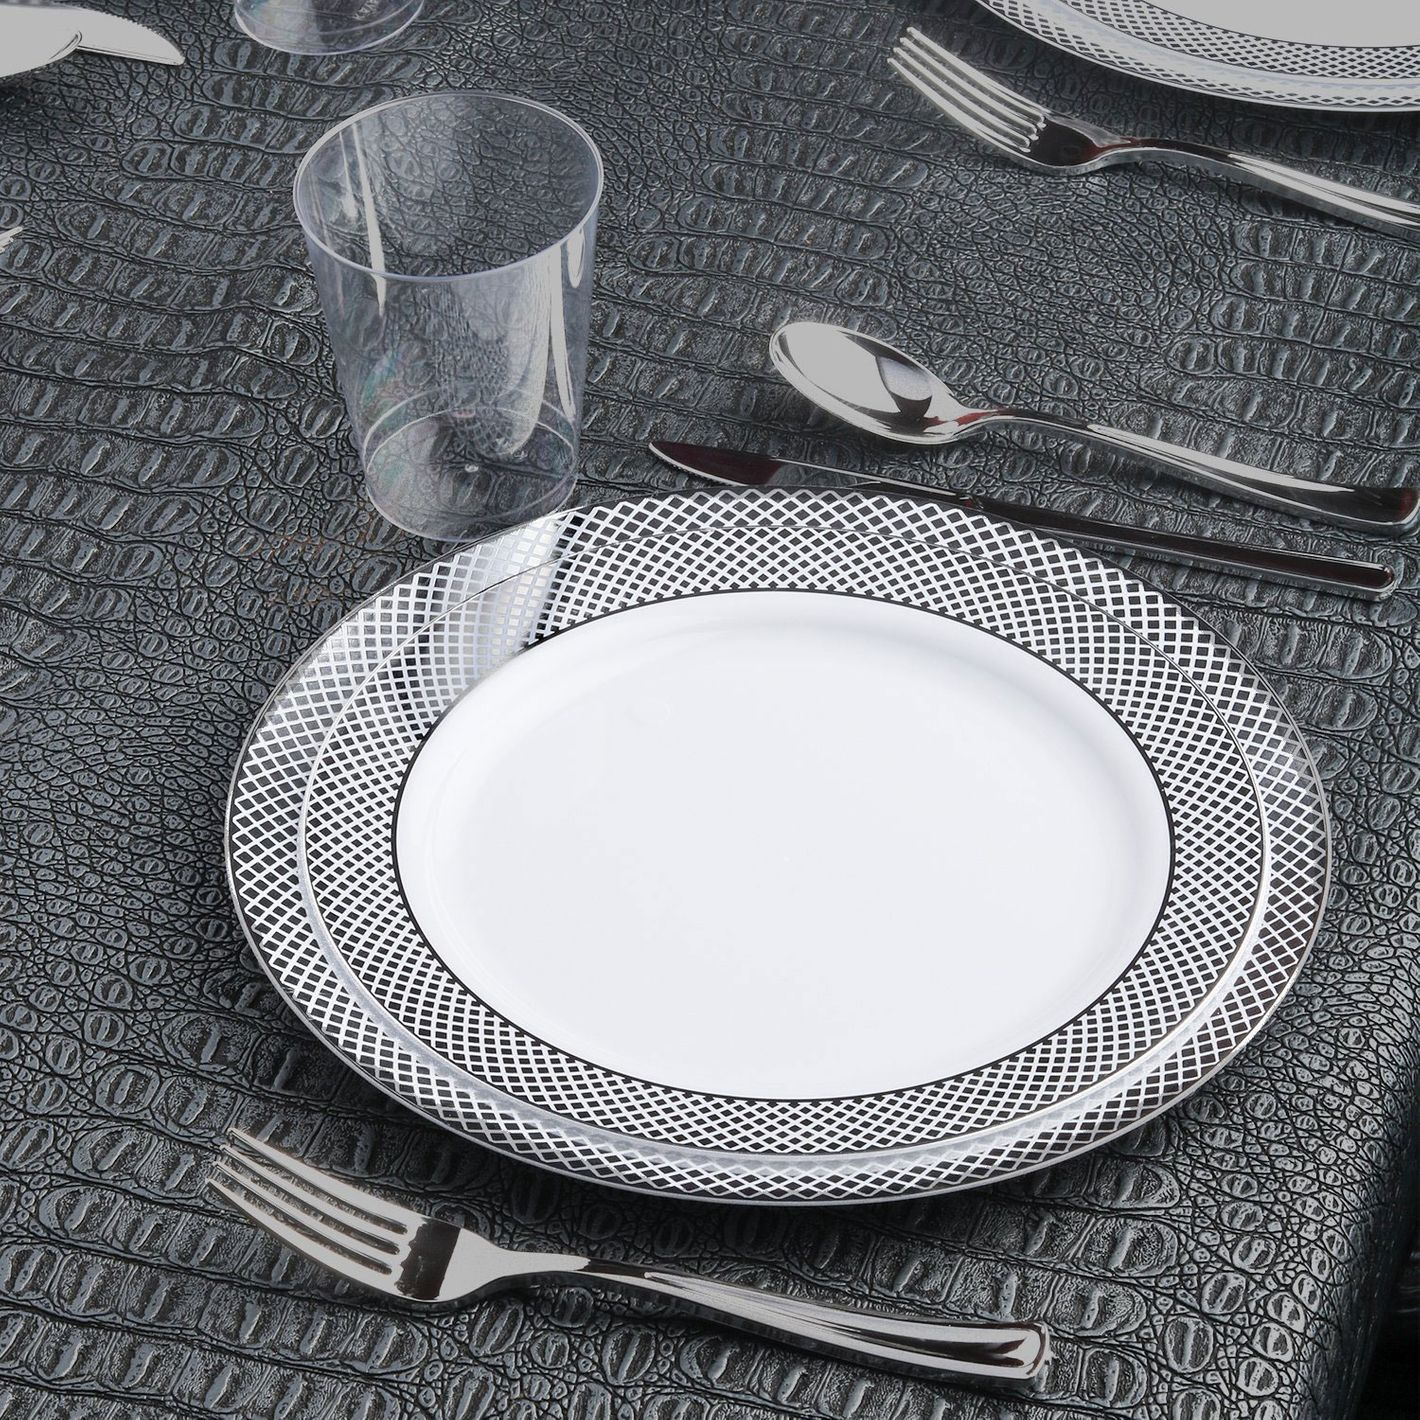 Kaya Collection u2014 Disposable White with Silver Diamond Rim Plastic Round 10.25-Inch Dinner Plates & Best Fancy Disposable Plates on Amazon